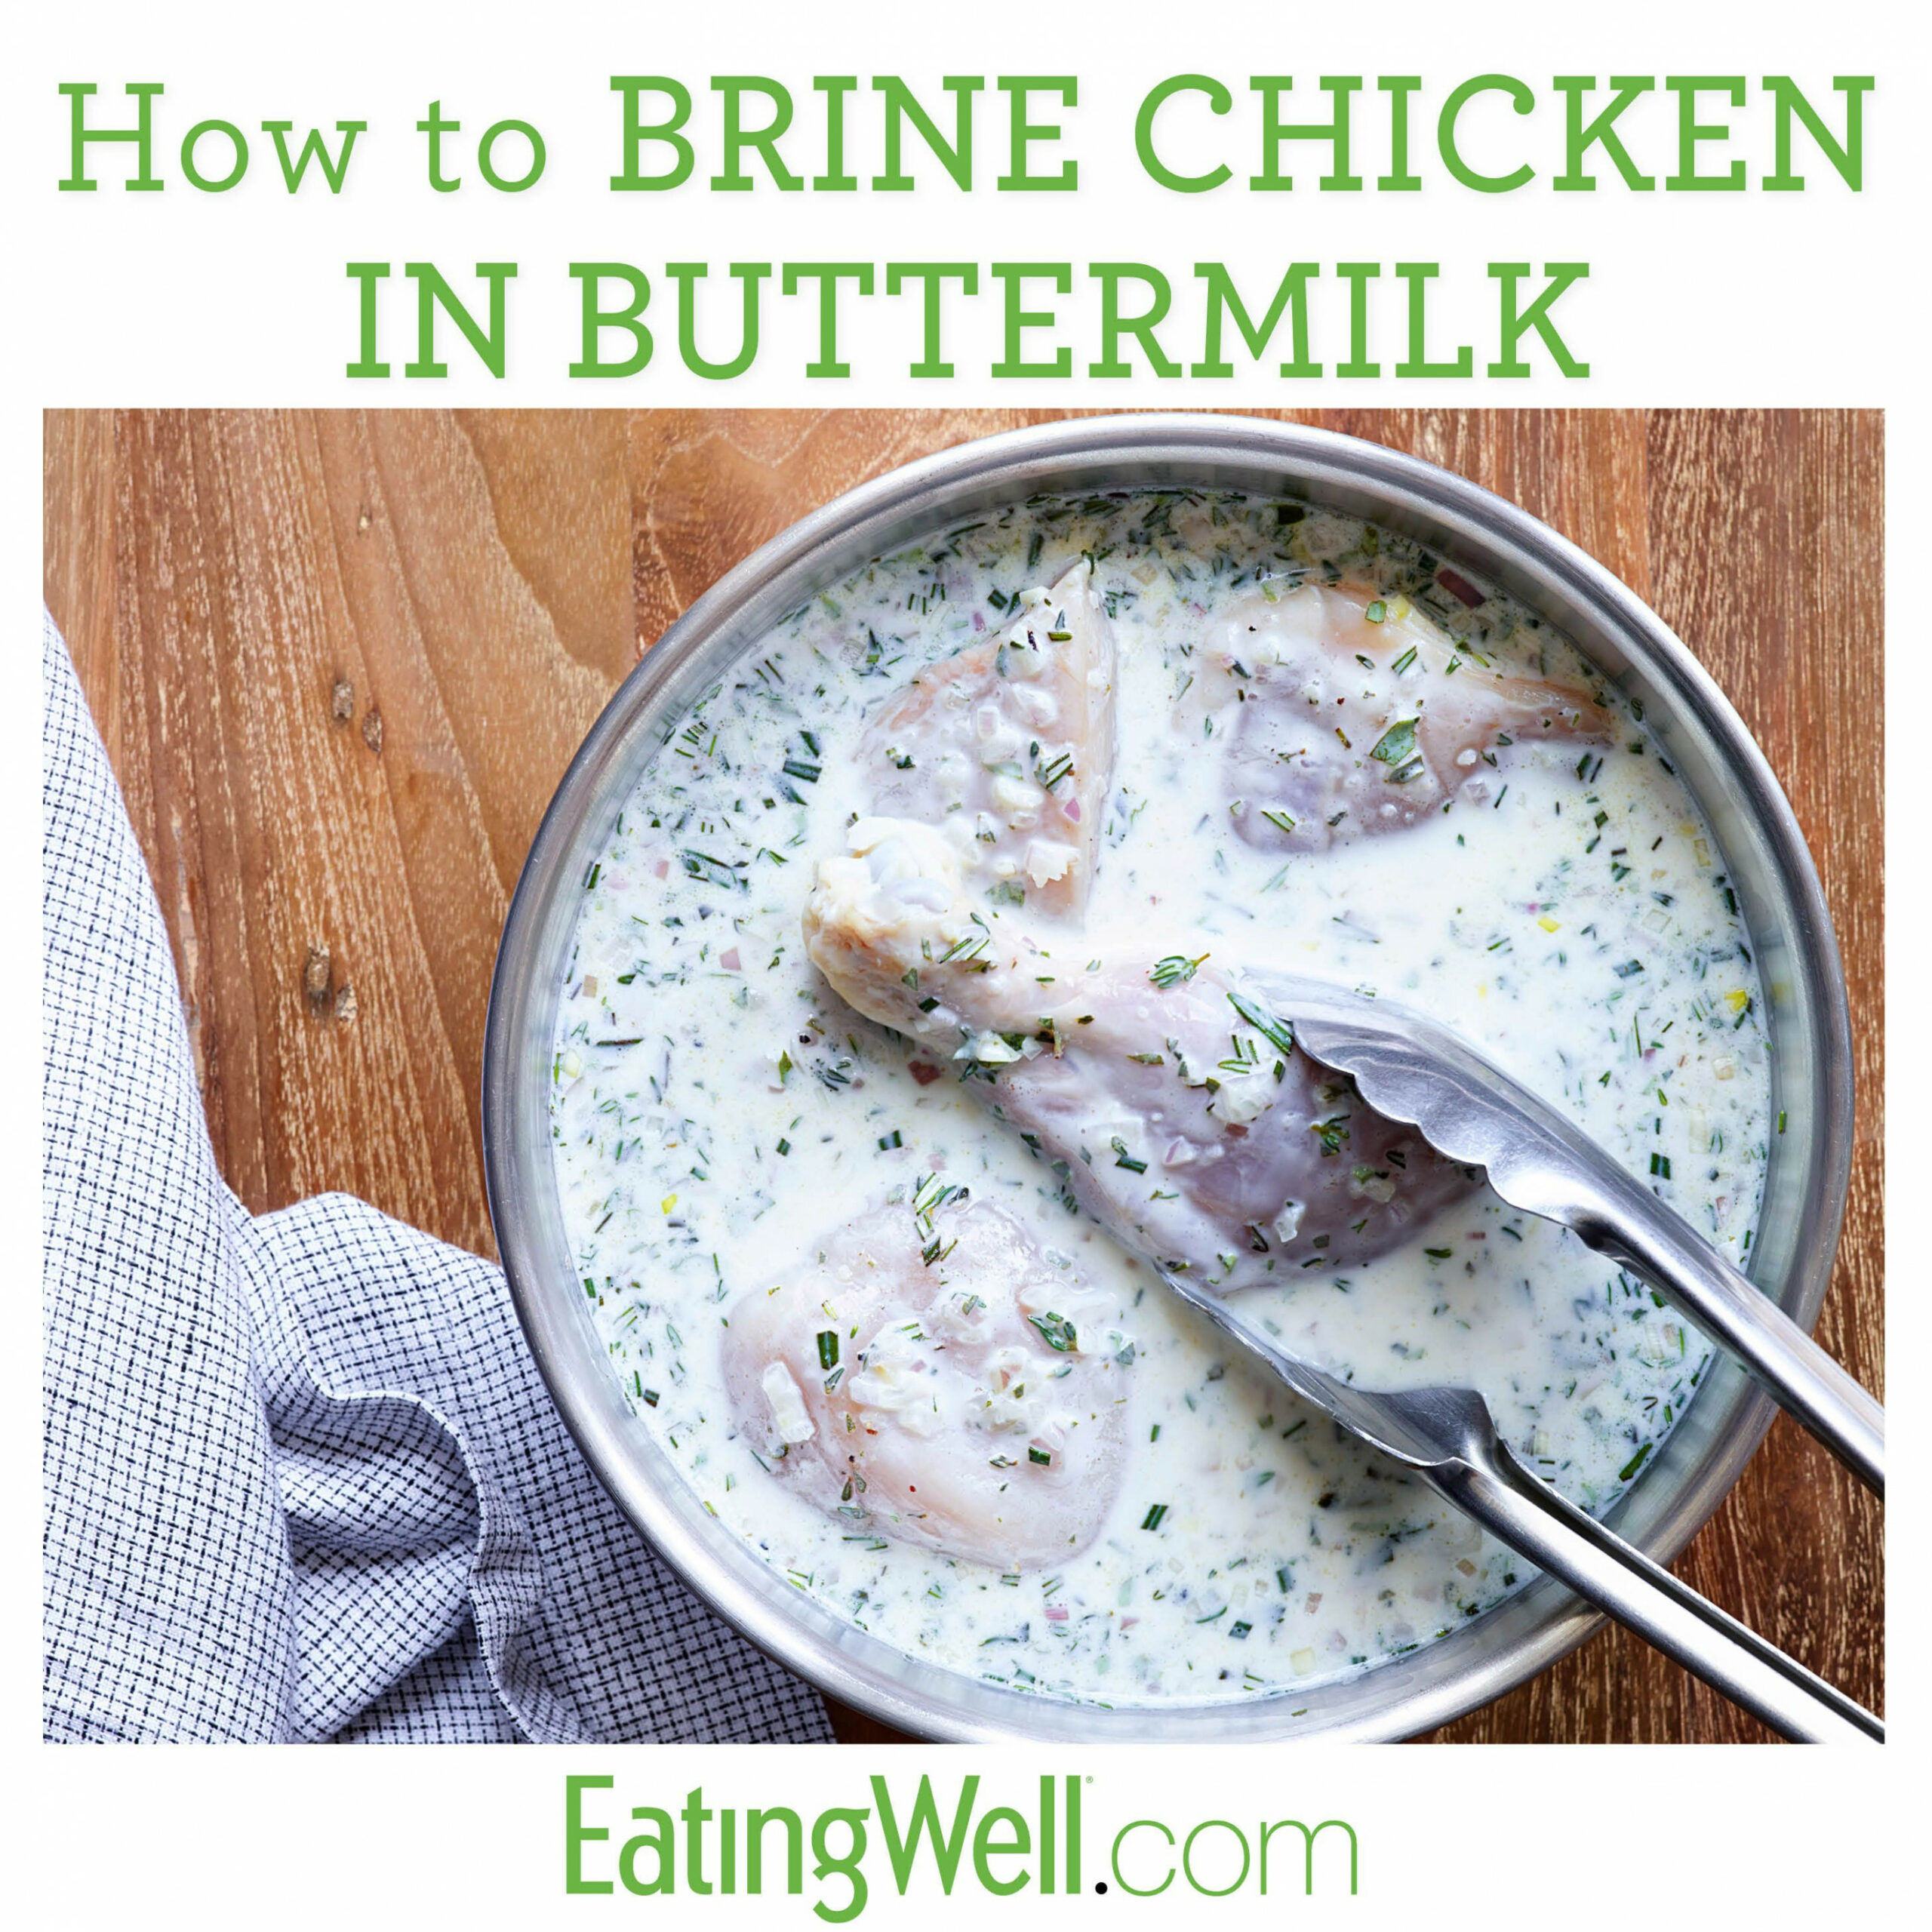 Buttermilk-Brined Chicken - chicken recipes using buttermilk